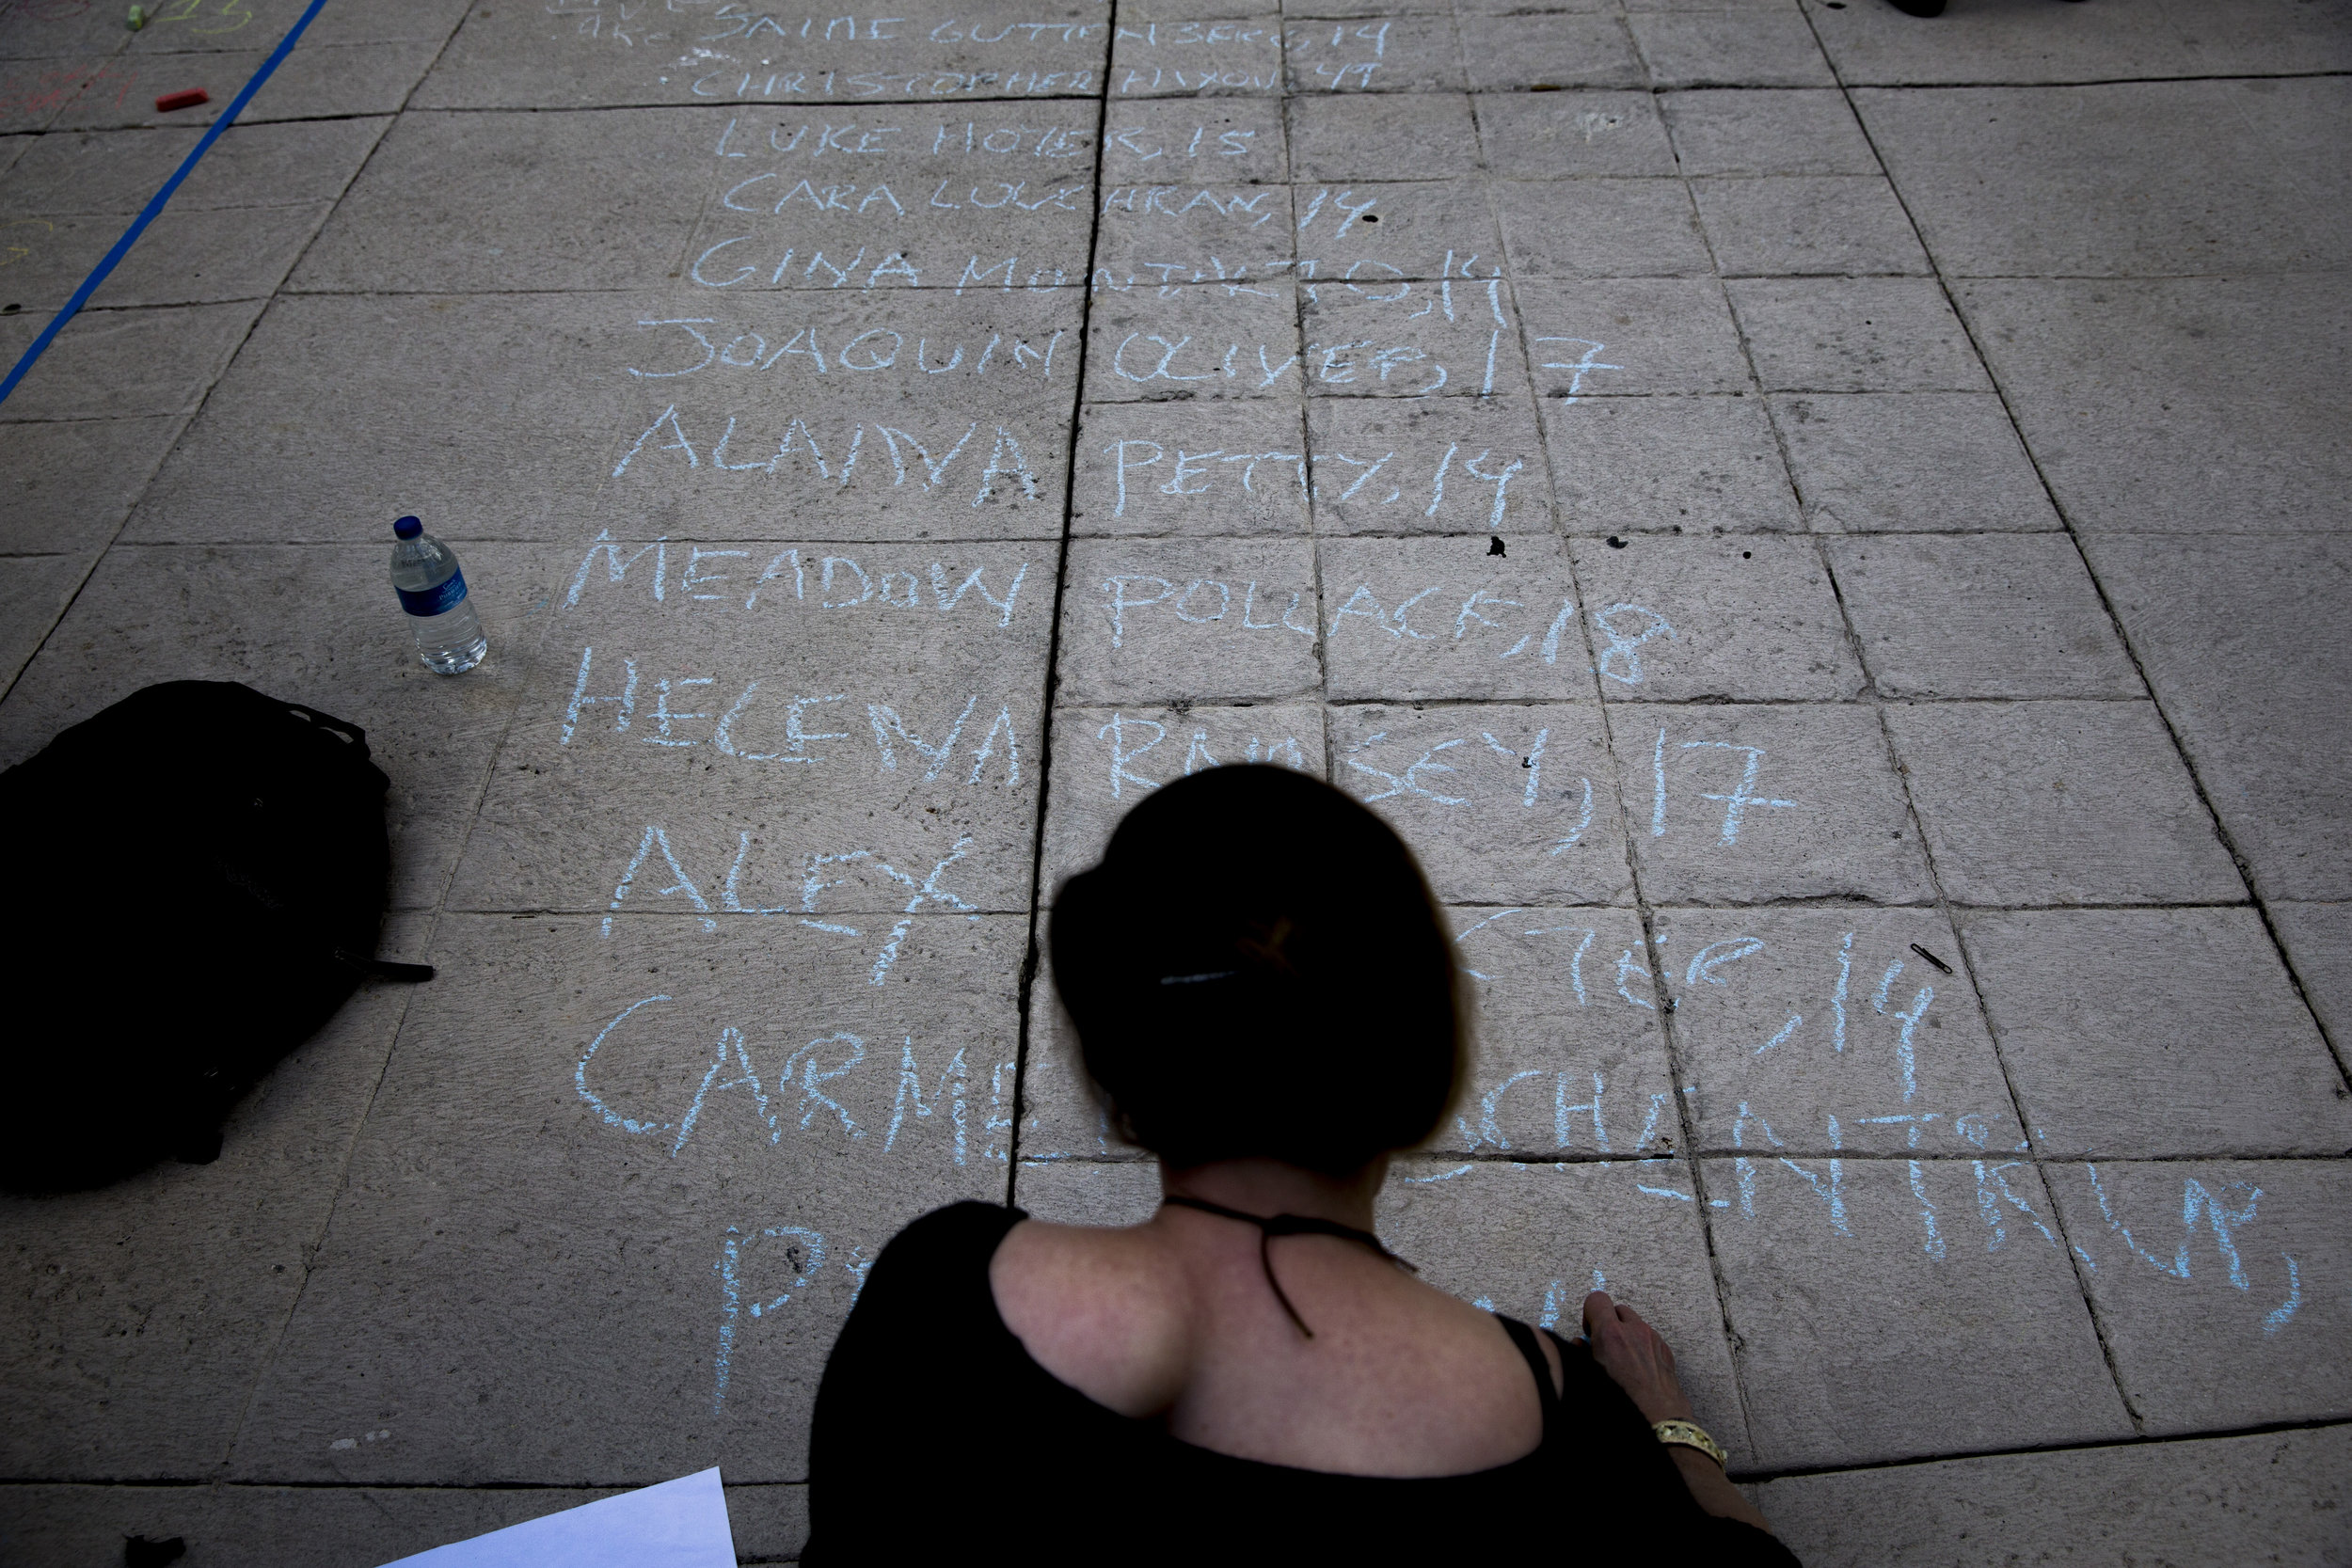 Hester Kamin, a long-time arts and humanities educator, marks down the names of the 17 lives lost in the Parkland, Fla. mass shooting at Marjory Stoneman Douglas High School outside the Collier County Courthouse Friday, Feb. 23, 2018 in Naples.